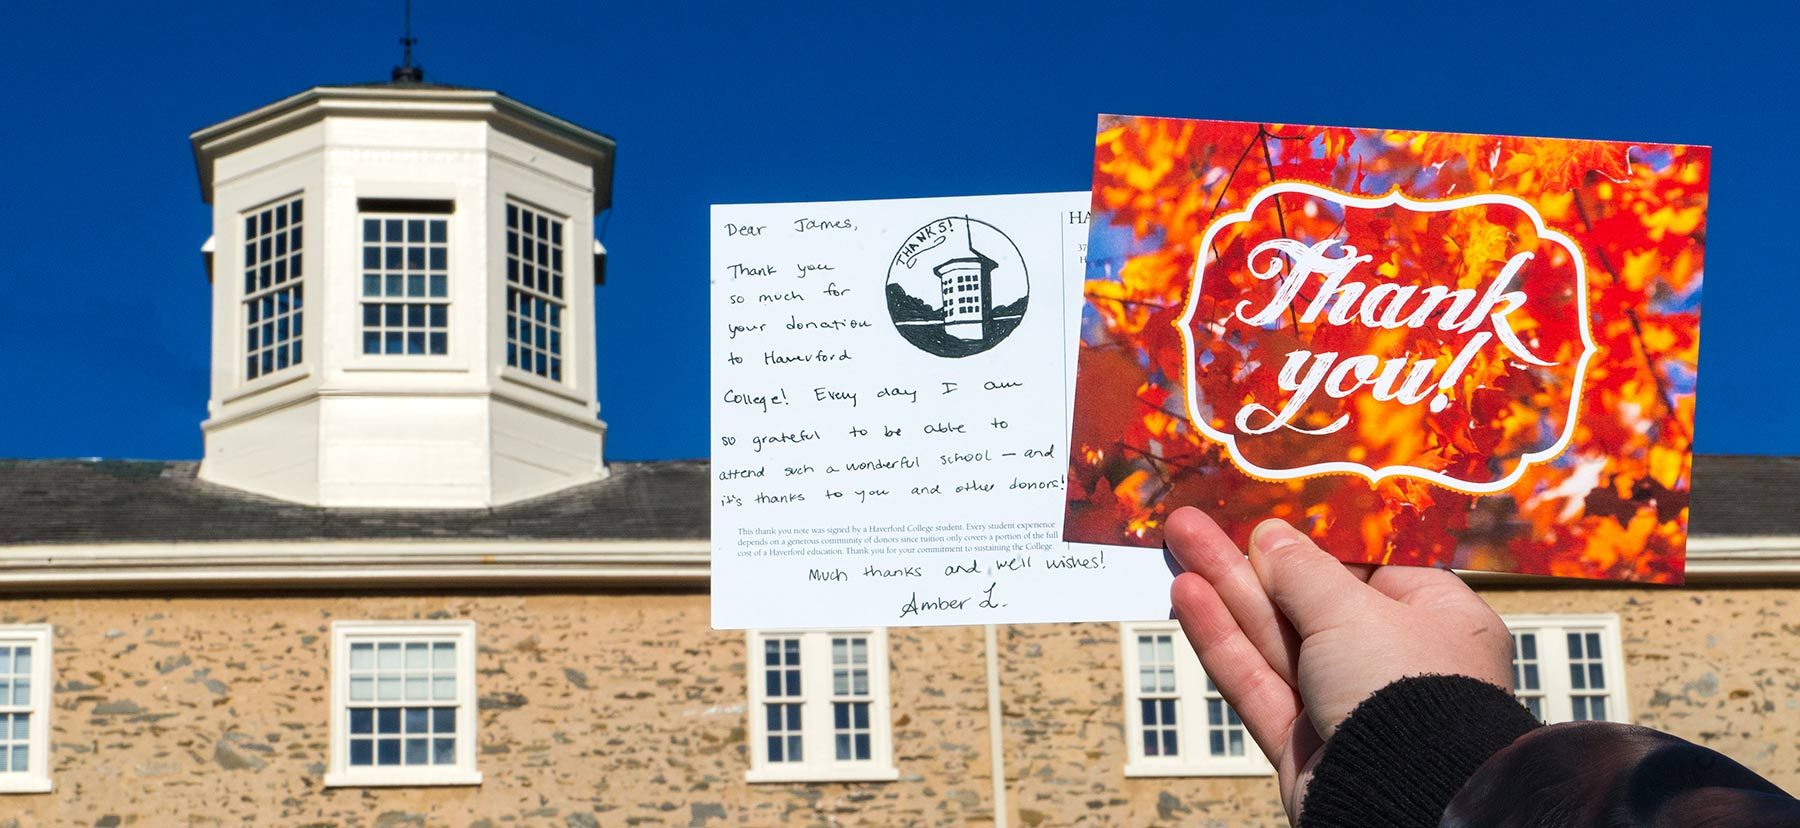 Thank You card for donor